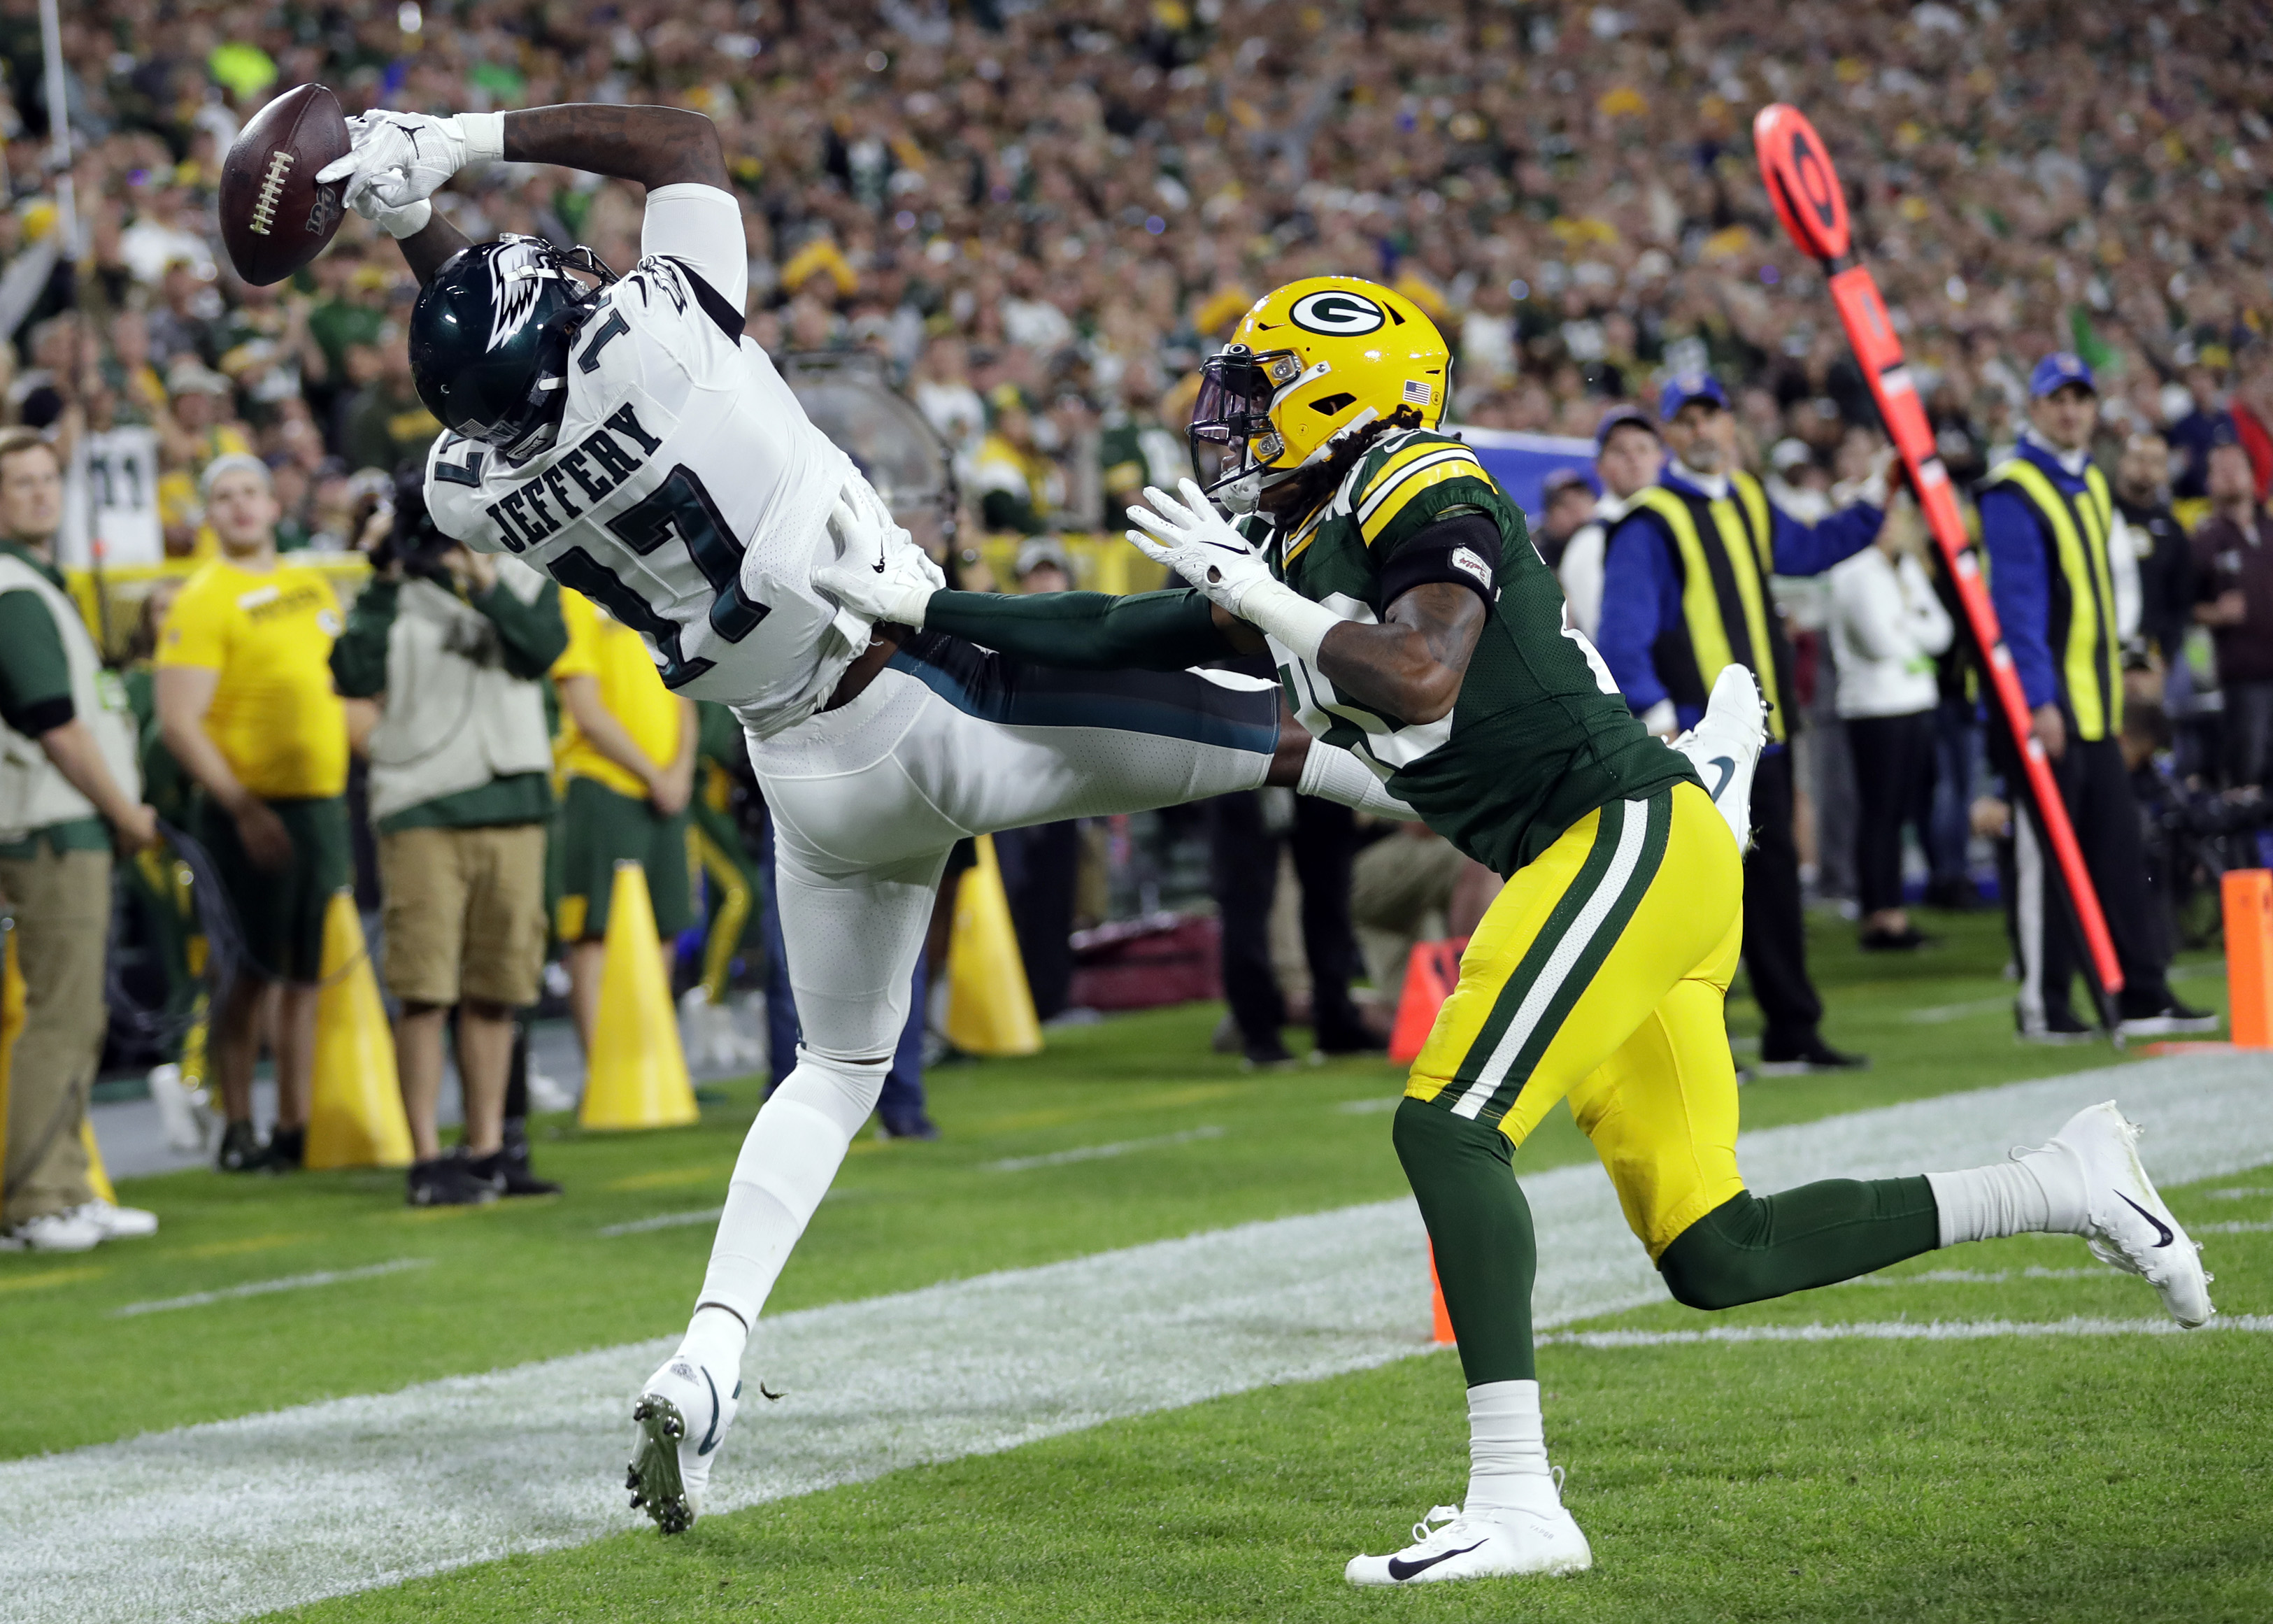 NFL: Philadelphia Eagles at Green Bay Packers